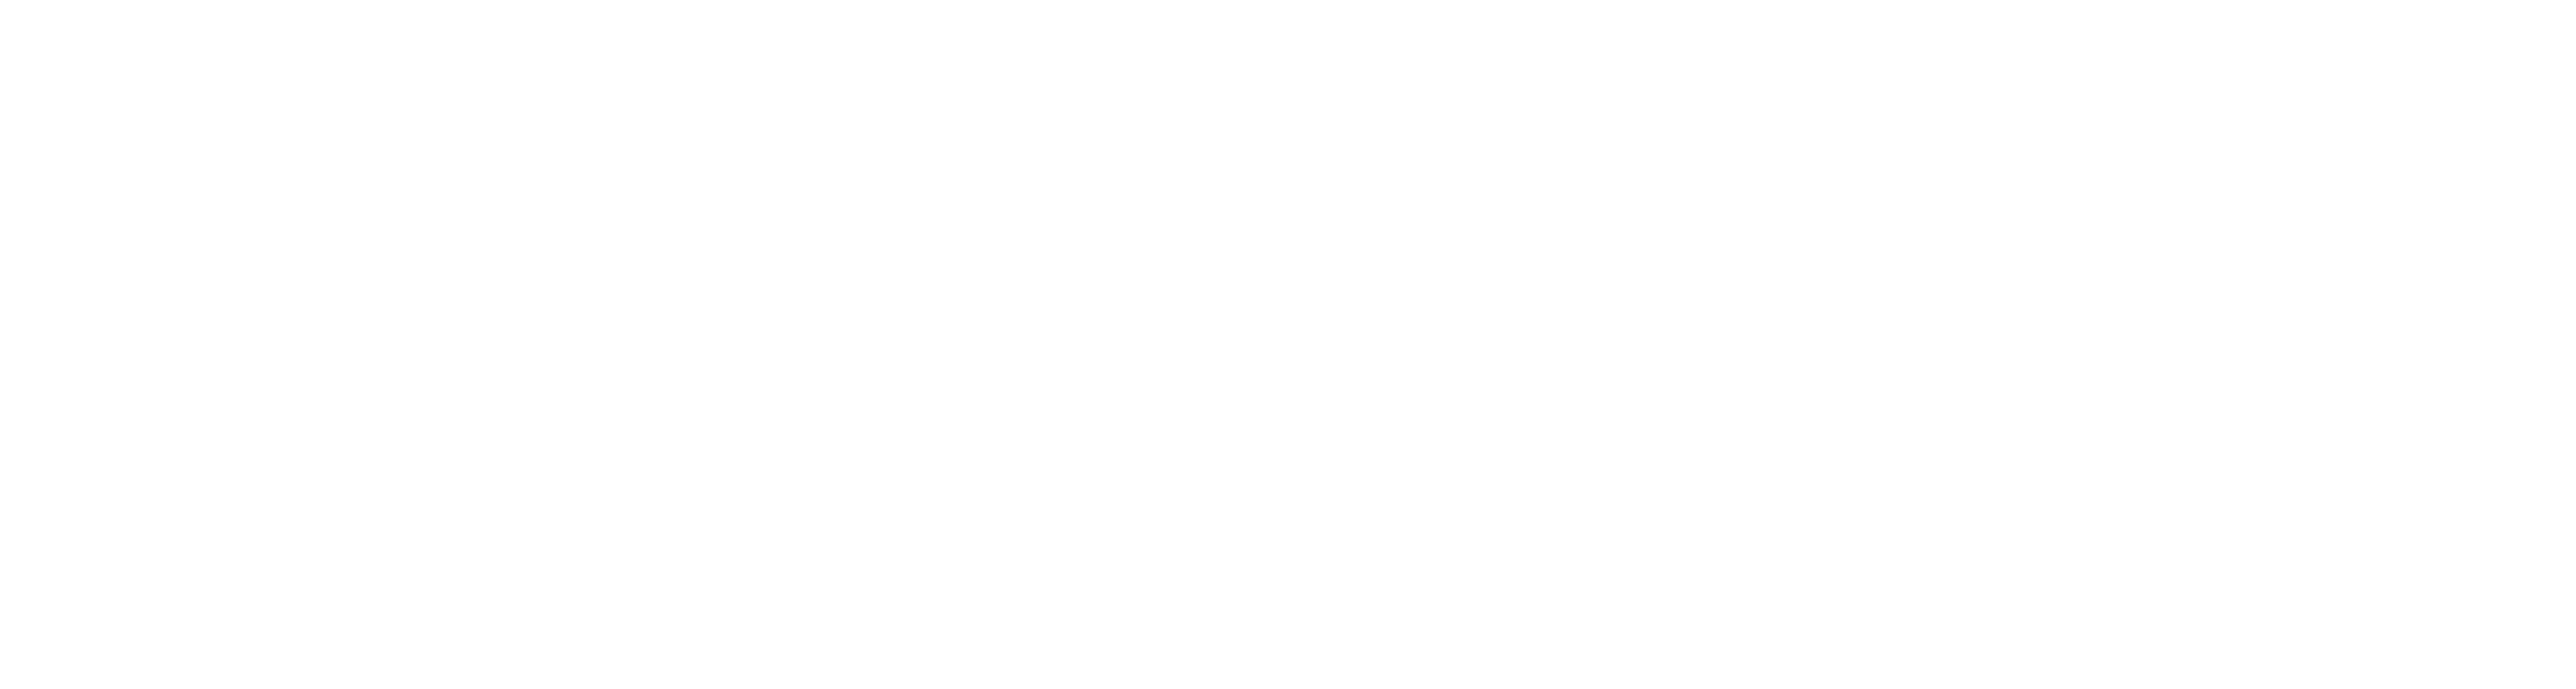 Best & Worst Cities for Families